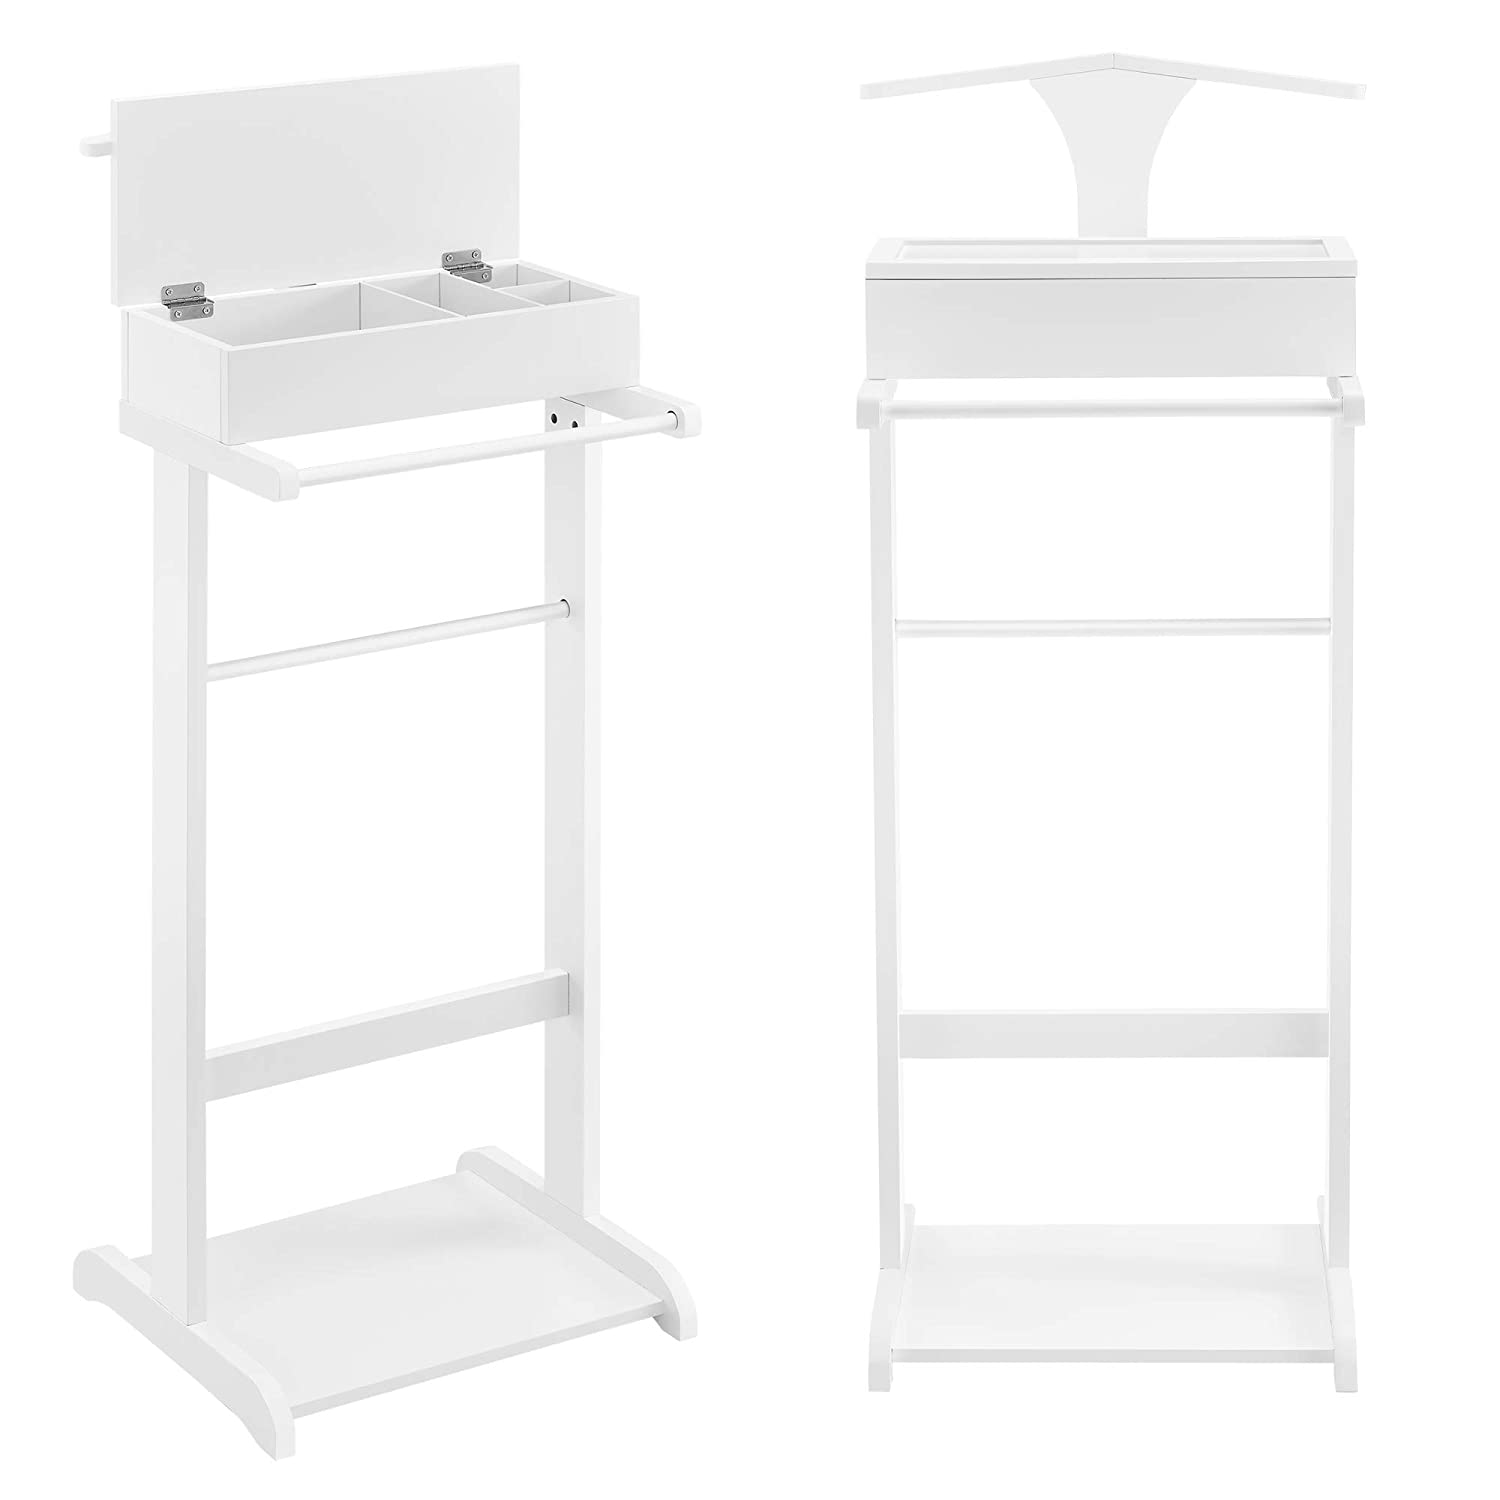 [en.casa] Suit stand Standing Clothes Valet 43,5x34,5x110cm White with Box  Storage